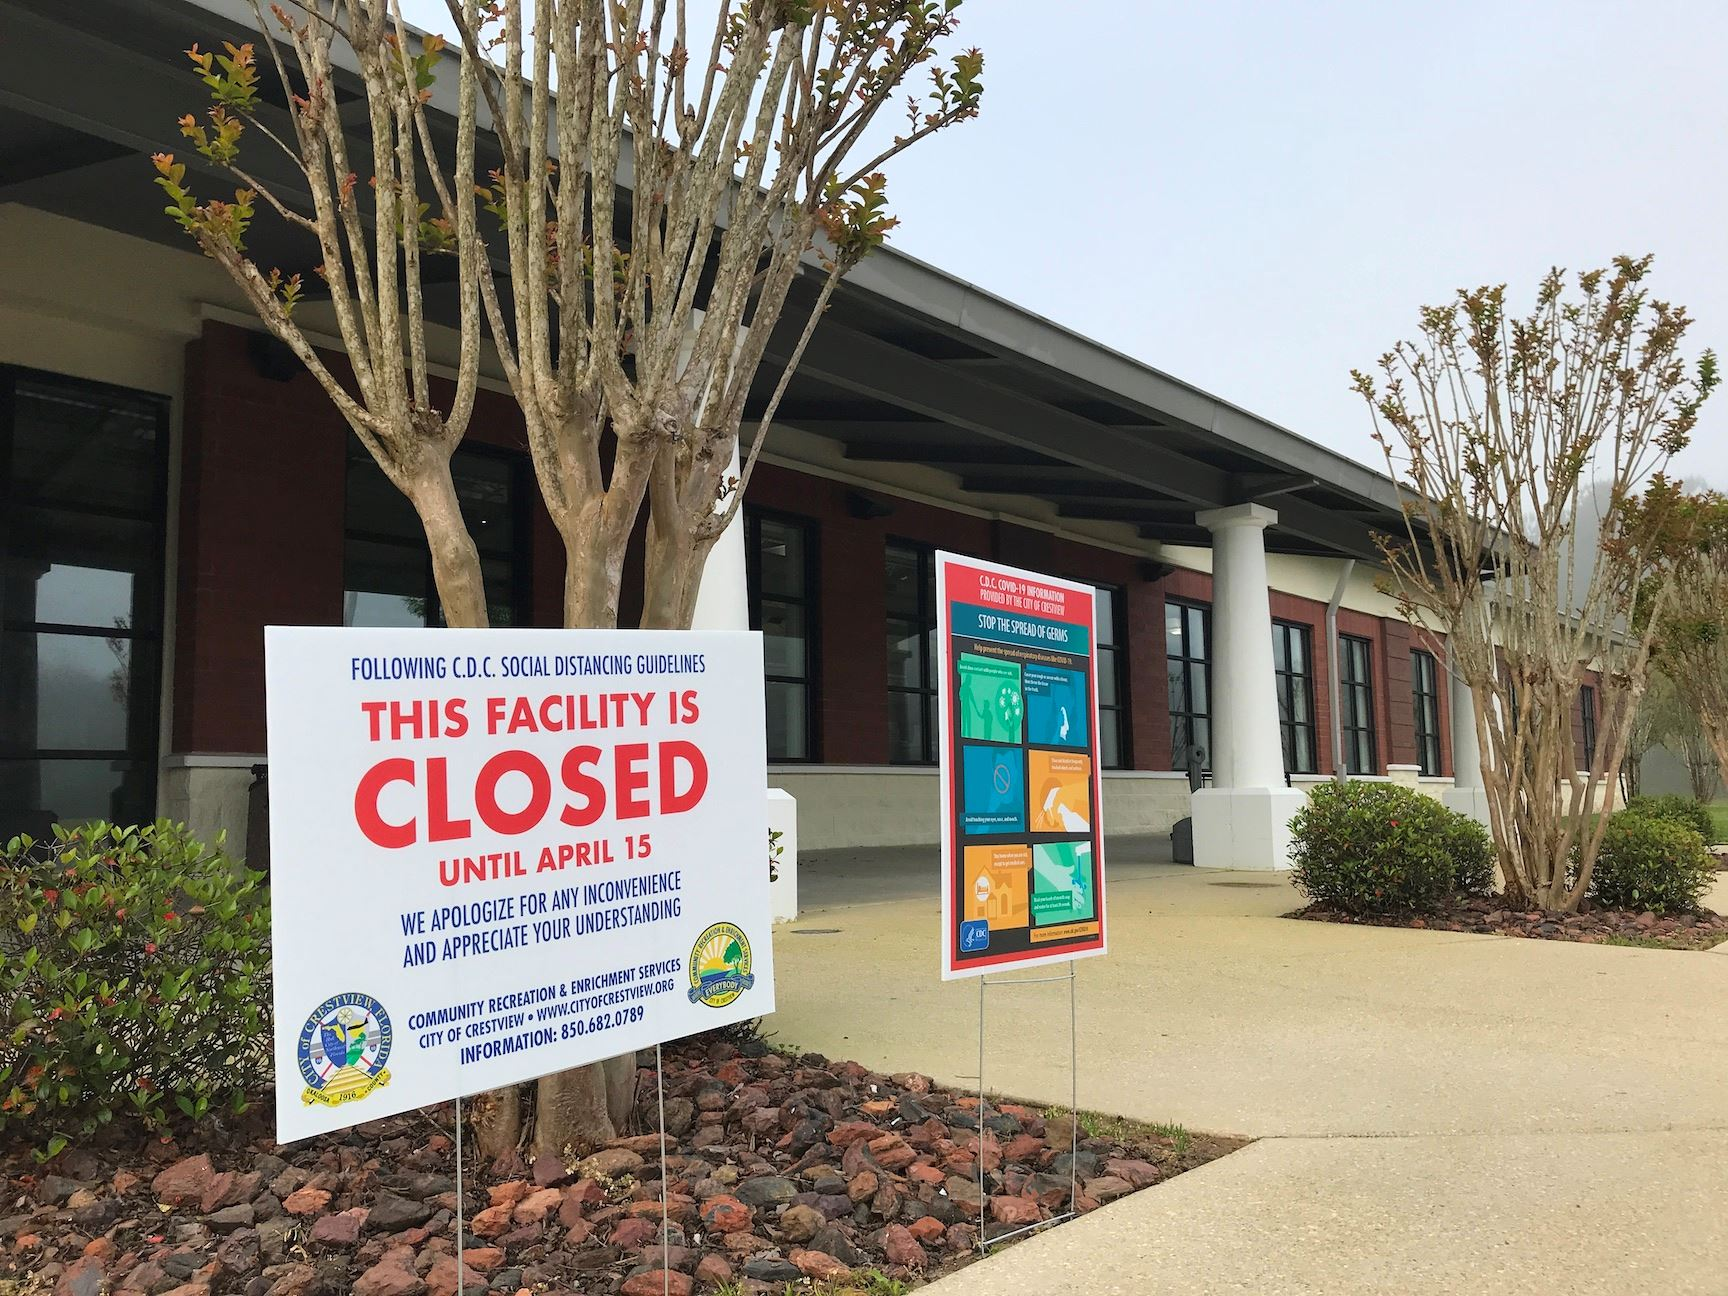 While the Crestview Public Library building is closed to help prevent the spread of the coronavirus,